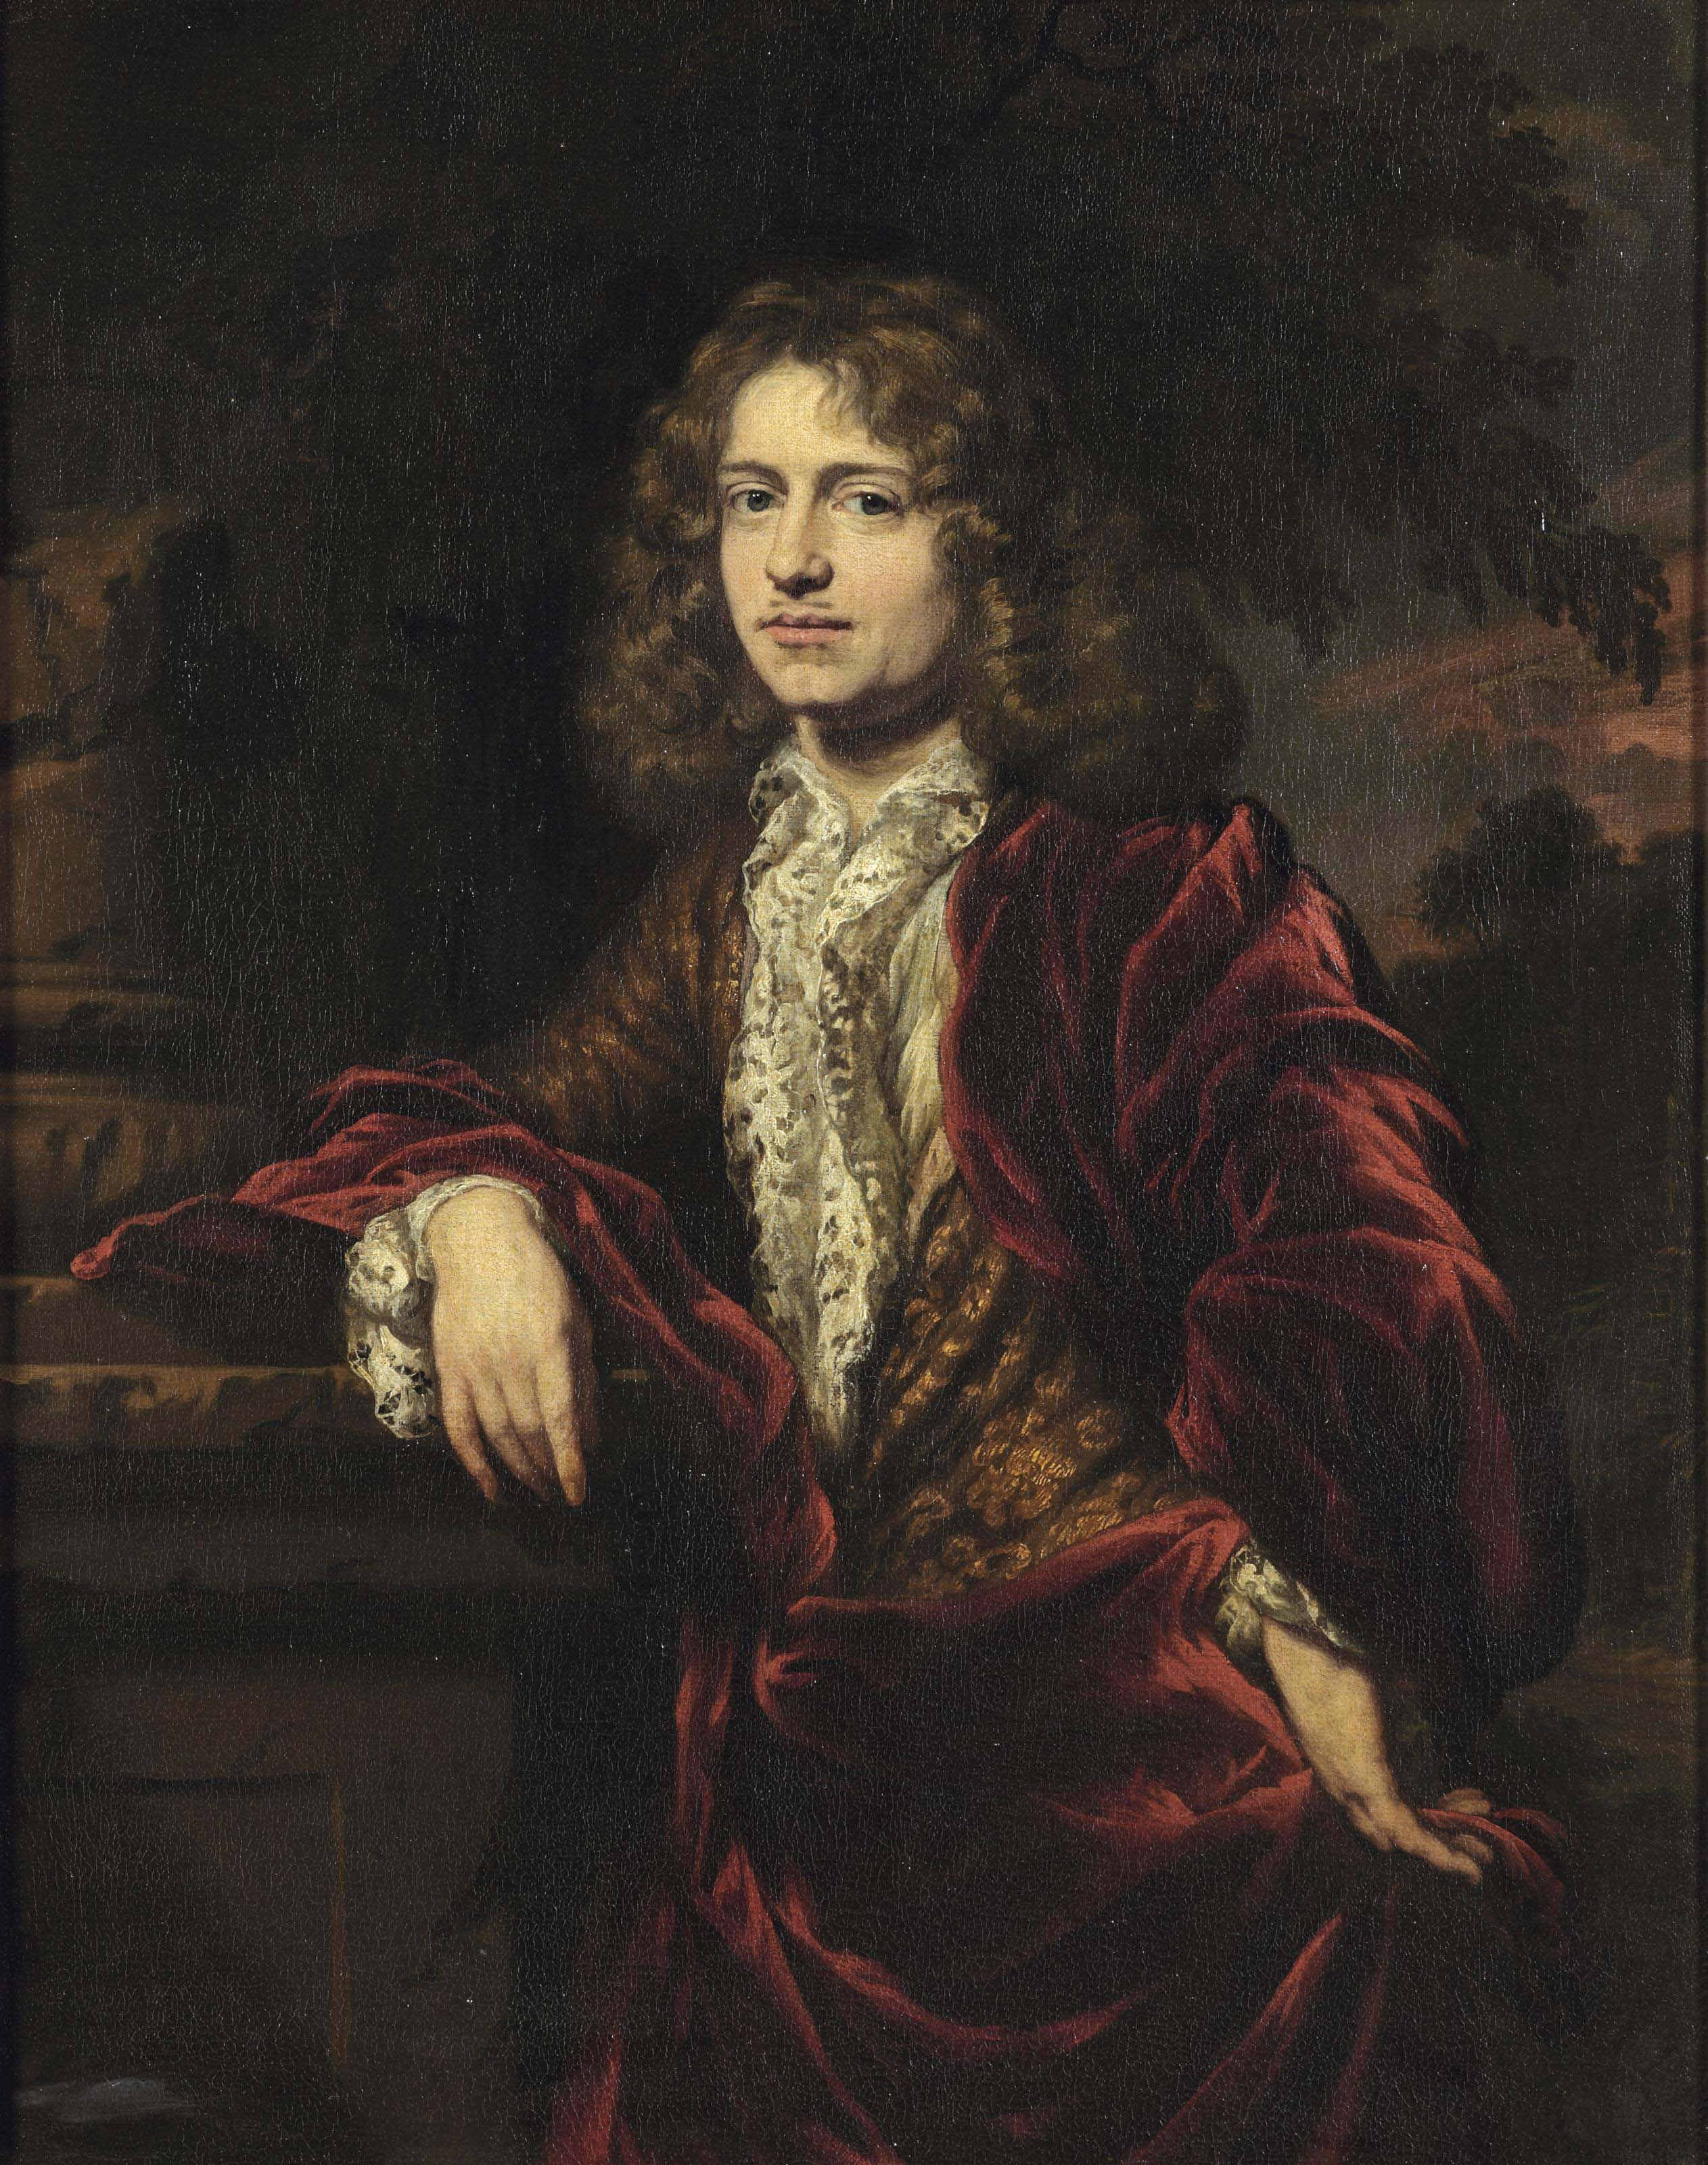 Portrait of a gentleman, three-quarter-length, in a white lace trimmed chemise and a red cloak over a gold brocate jacket, standing by a classical column in a park landscape